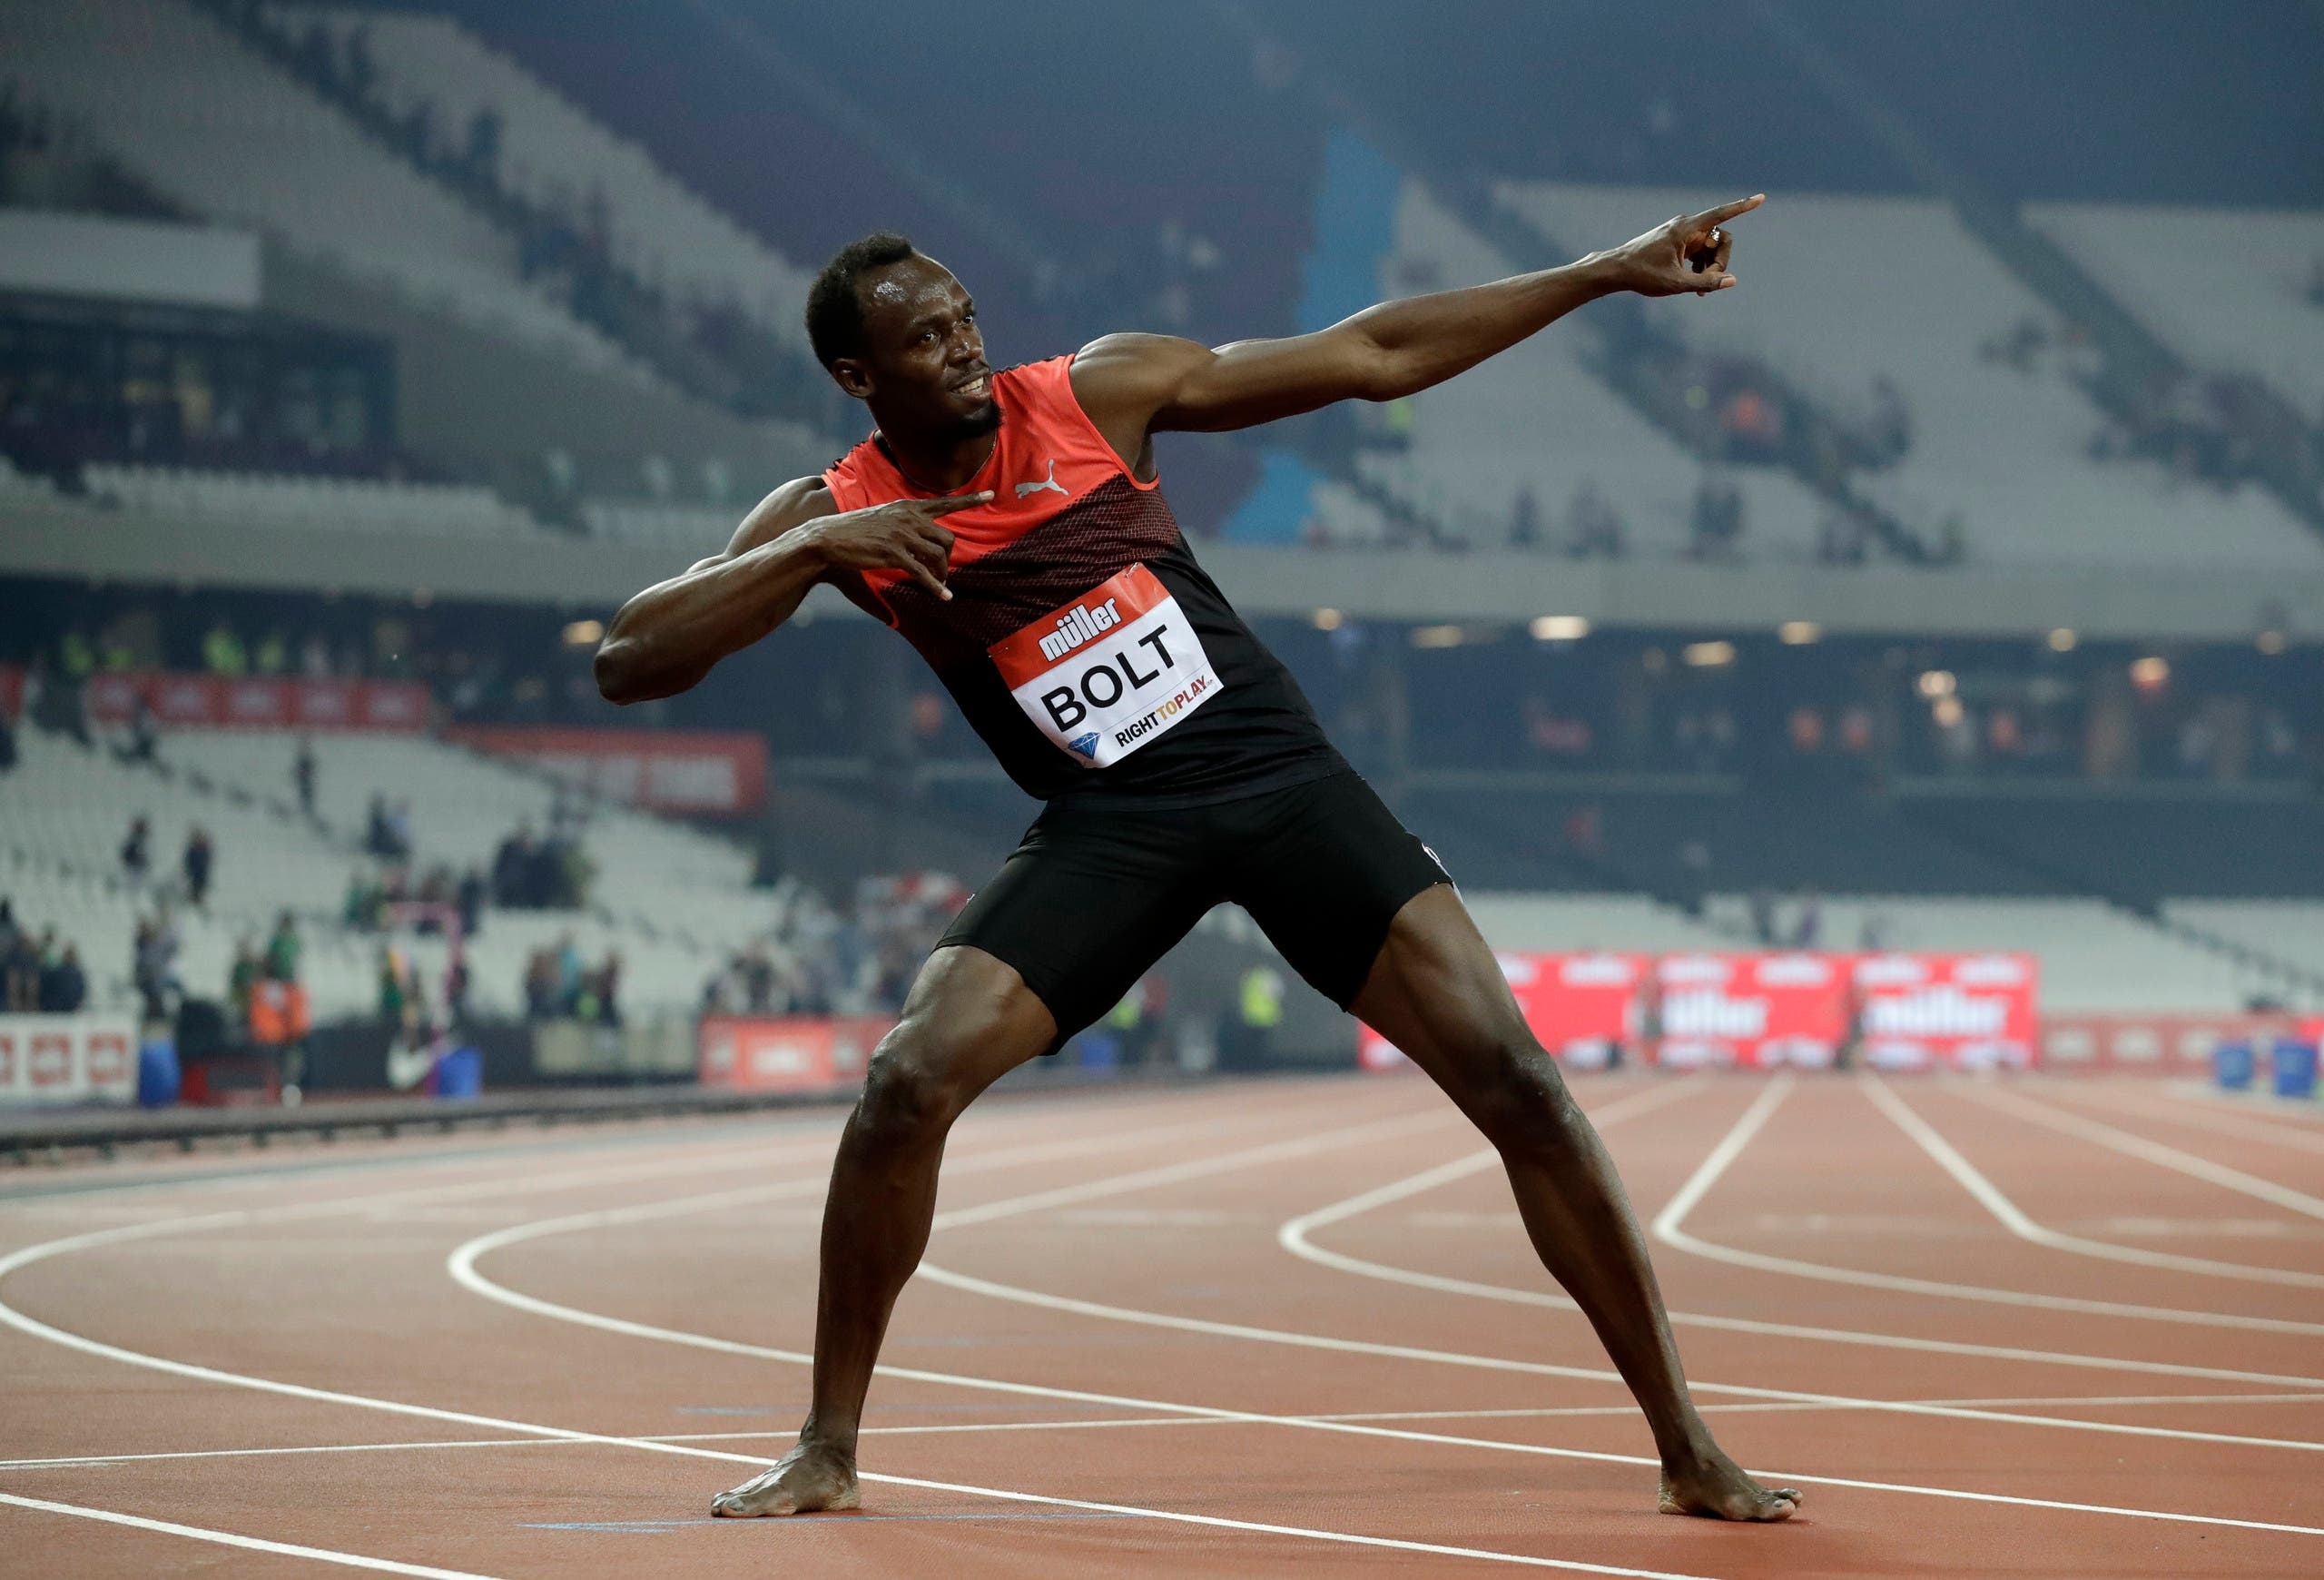 Usain Bolt of Jamaica poses for photographers after he won the men's 200 meter race during the Diamond League anniversary games at The Stadium, in the Queen Elizabeth Olympic Park in London, Friday, July 22, 2016.(AP)